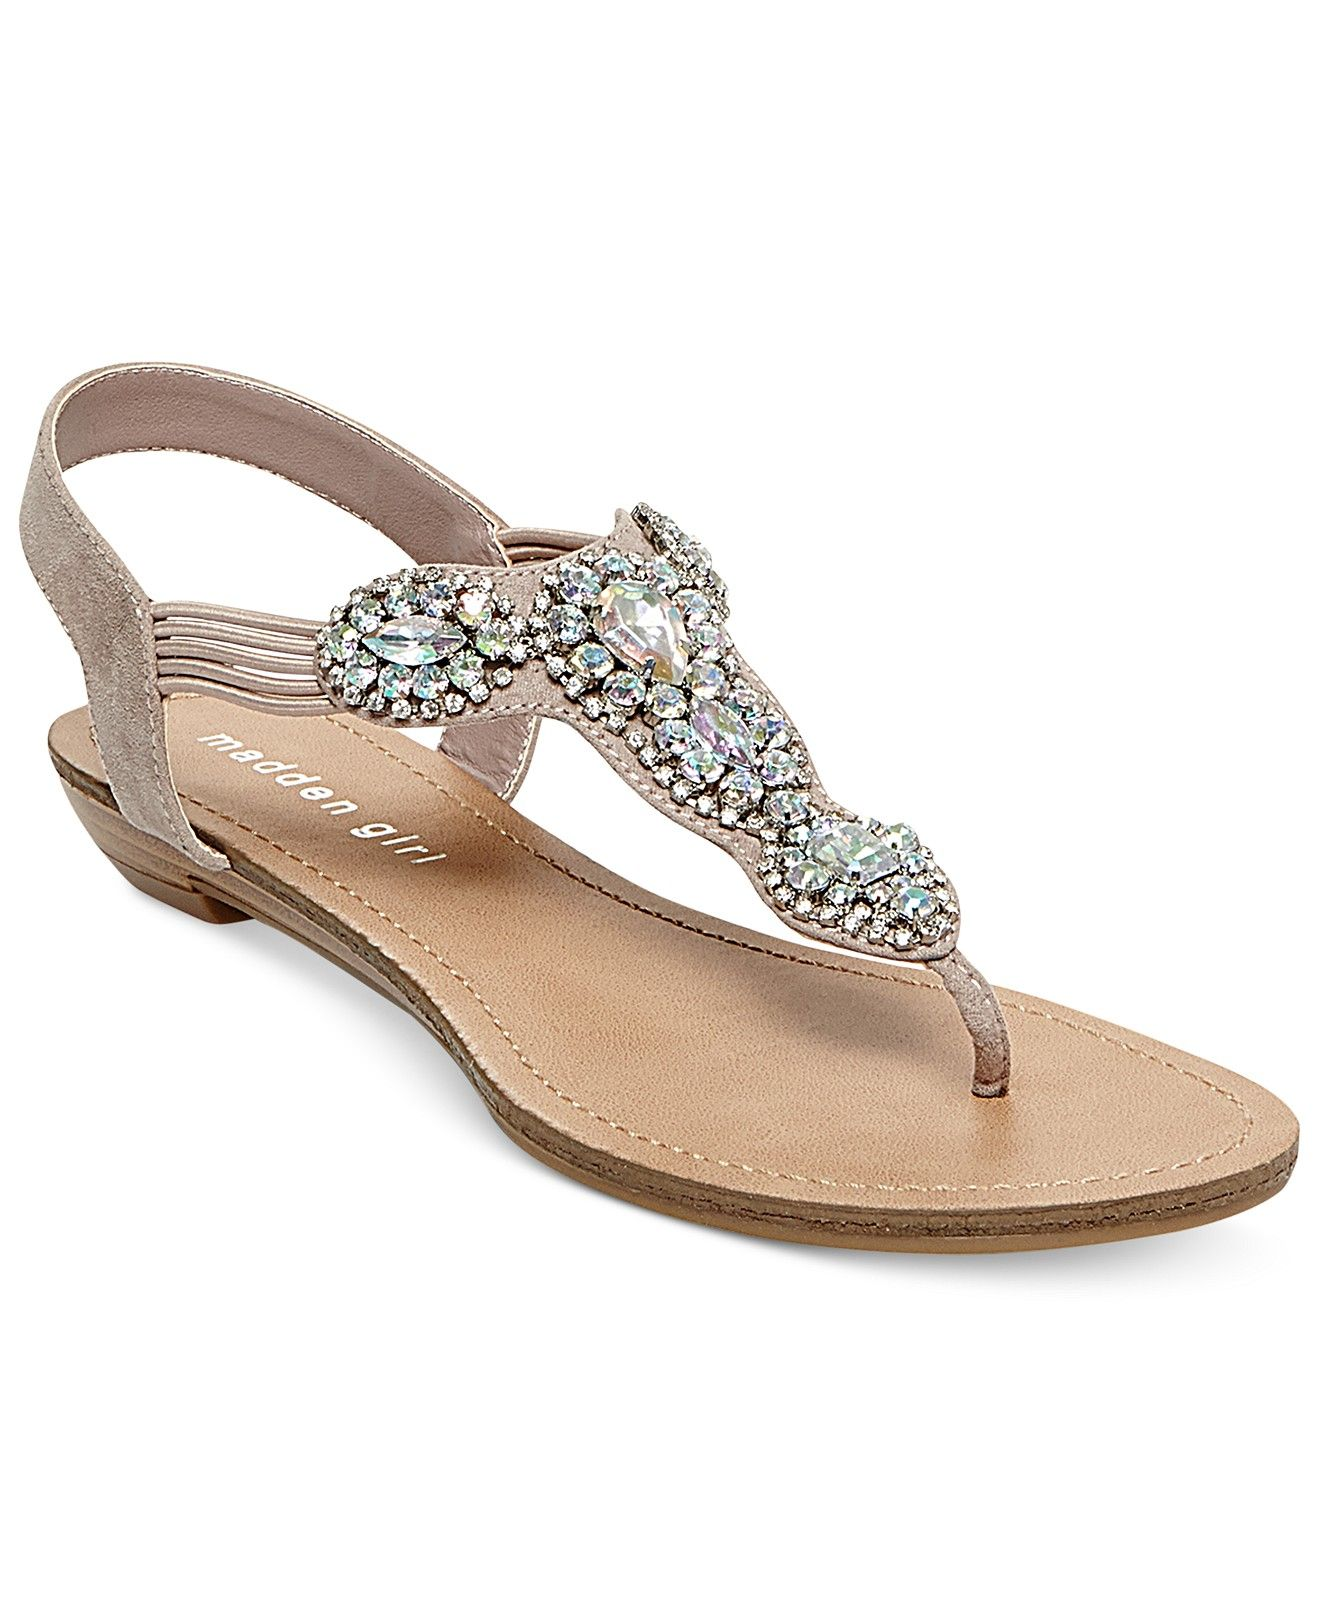 f22787f981339 Pin by Lori Bartone on Shoe lust | Jeweled sandals, Shoes, Sandals